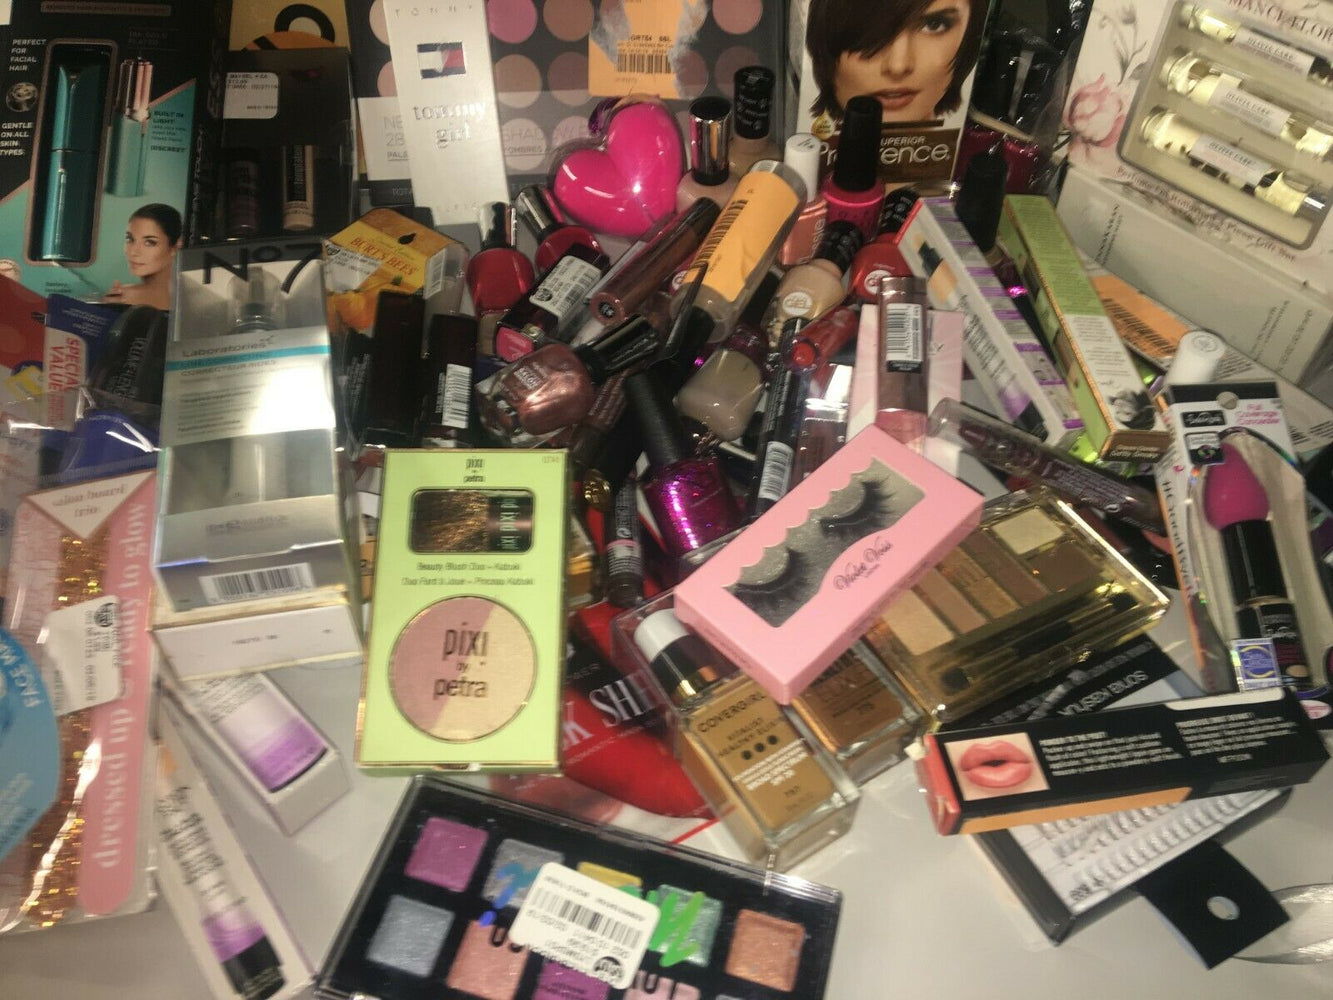 BrandNEW Make up Products Elf, No7, Revlon,Pixi,Milani, ect Full Size Great gift